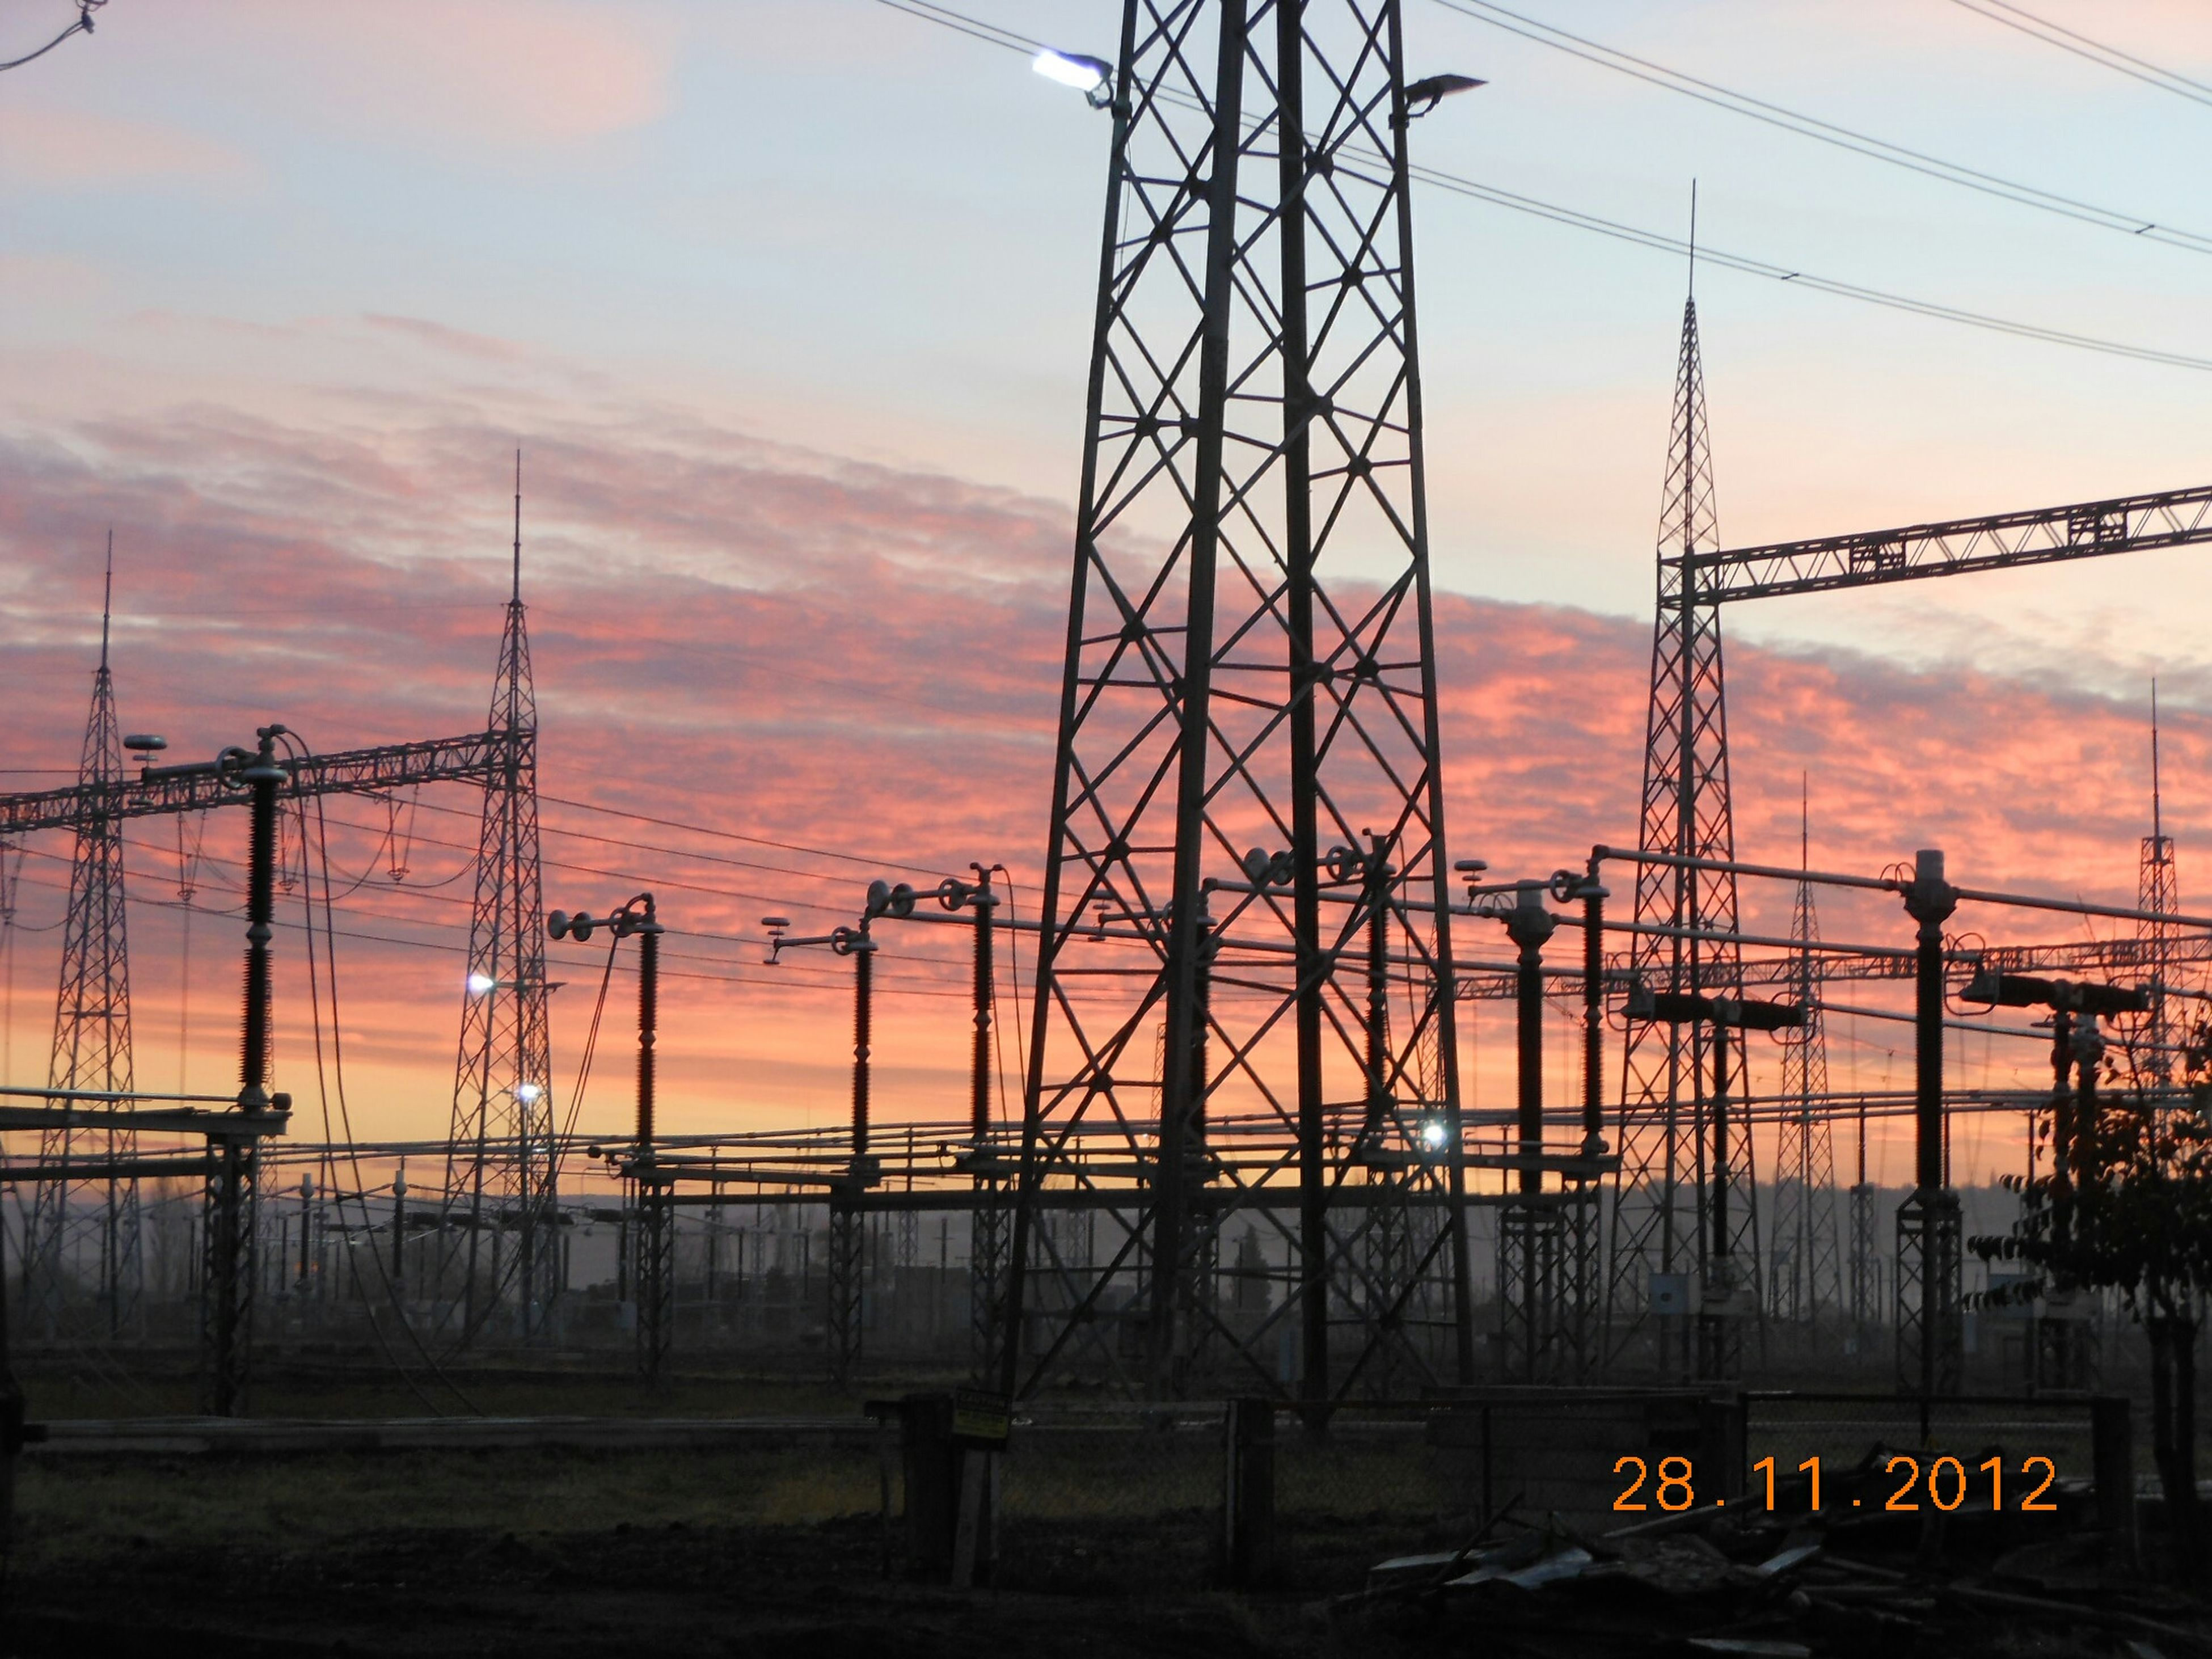 sunset, electricity pylon, sky, power line, silhouette, power supply, orange color, electricity, cloud - sky, connection, fuel and power generation, transportation, cable, technology, no people, nature, cloud, outdoors, dusk, low angle view